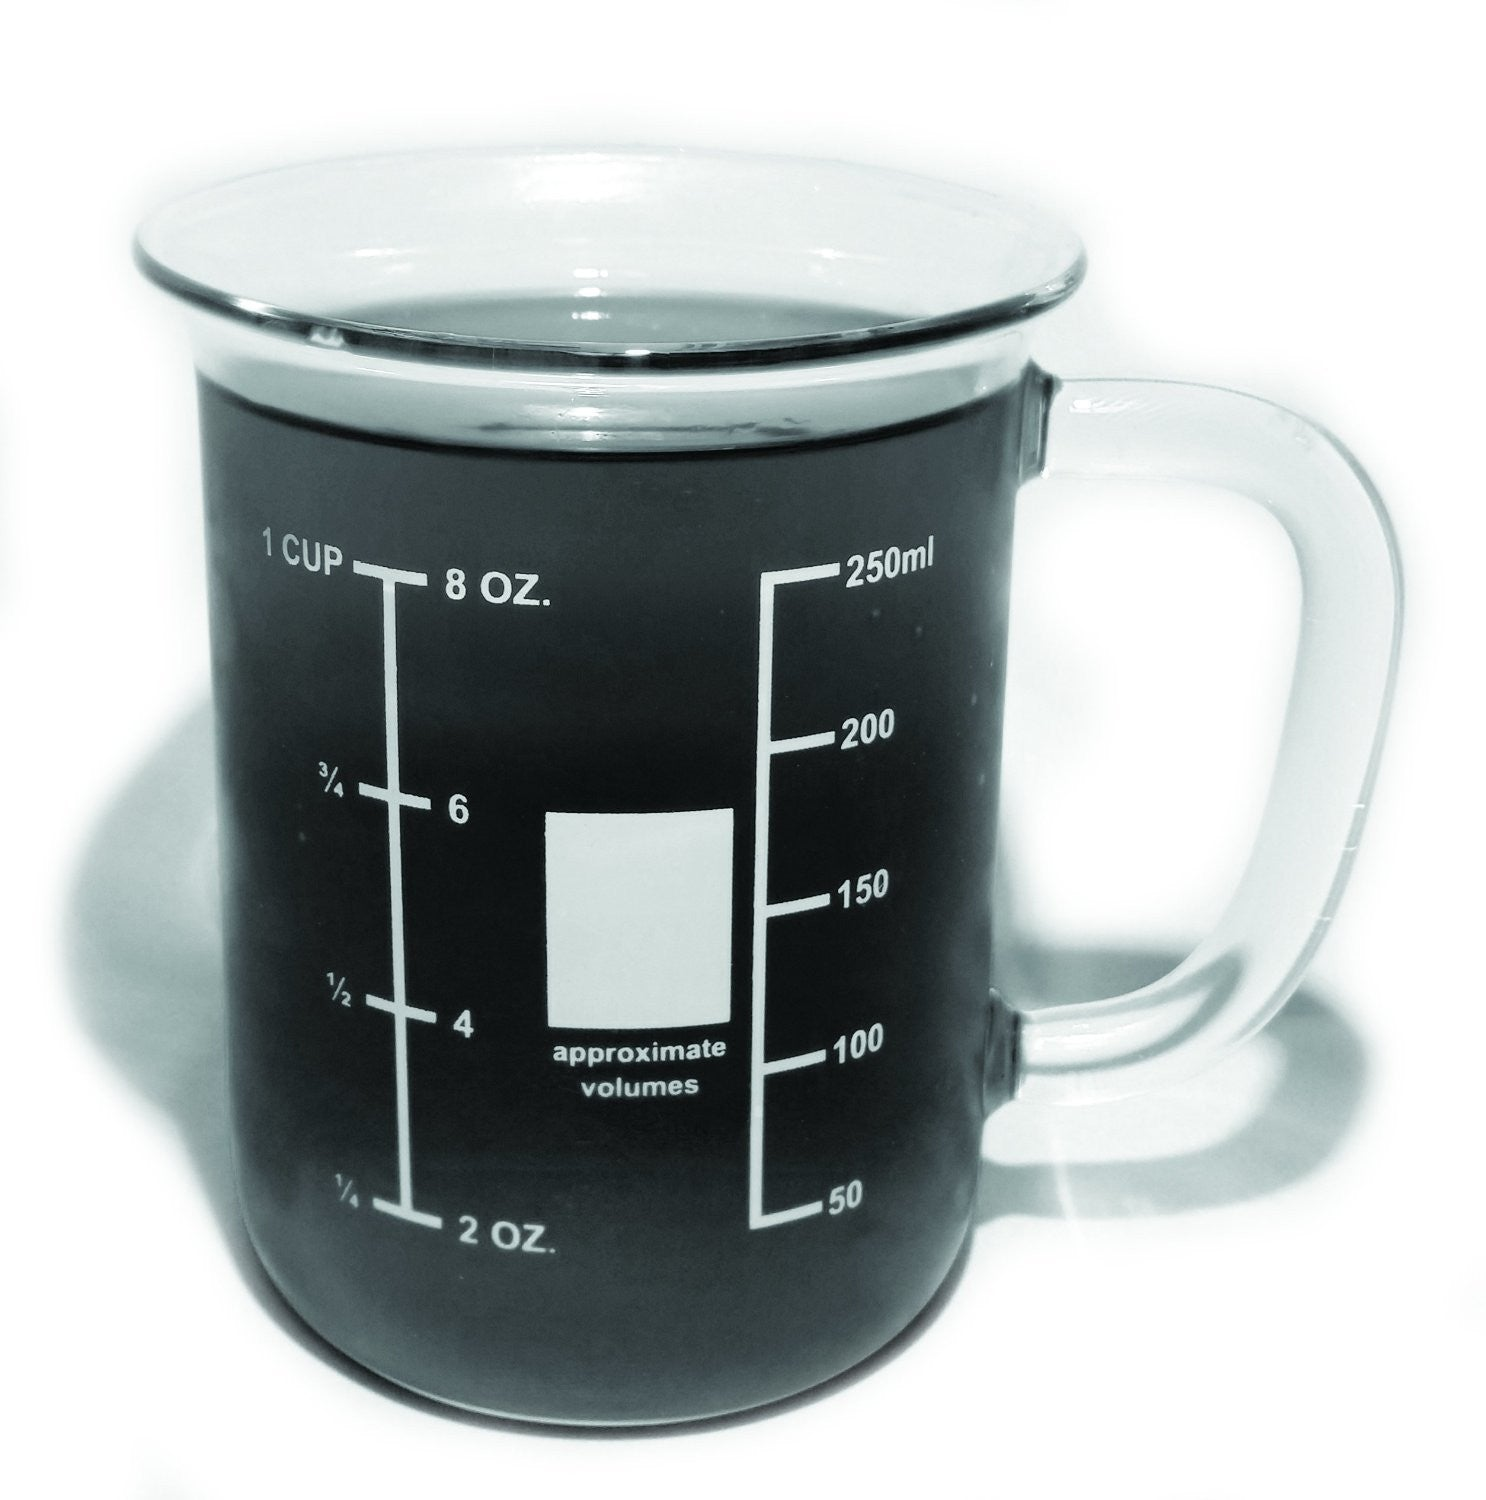 Glass Beaker Mug - 250mL - The Science Shop